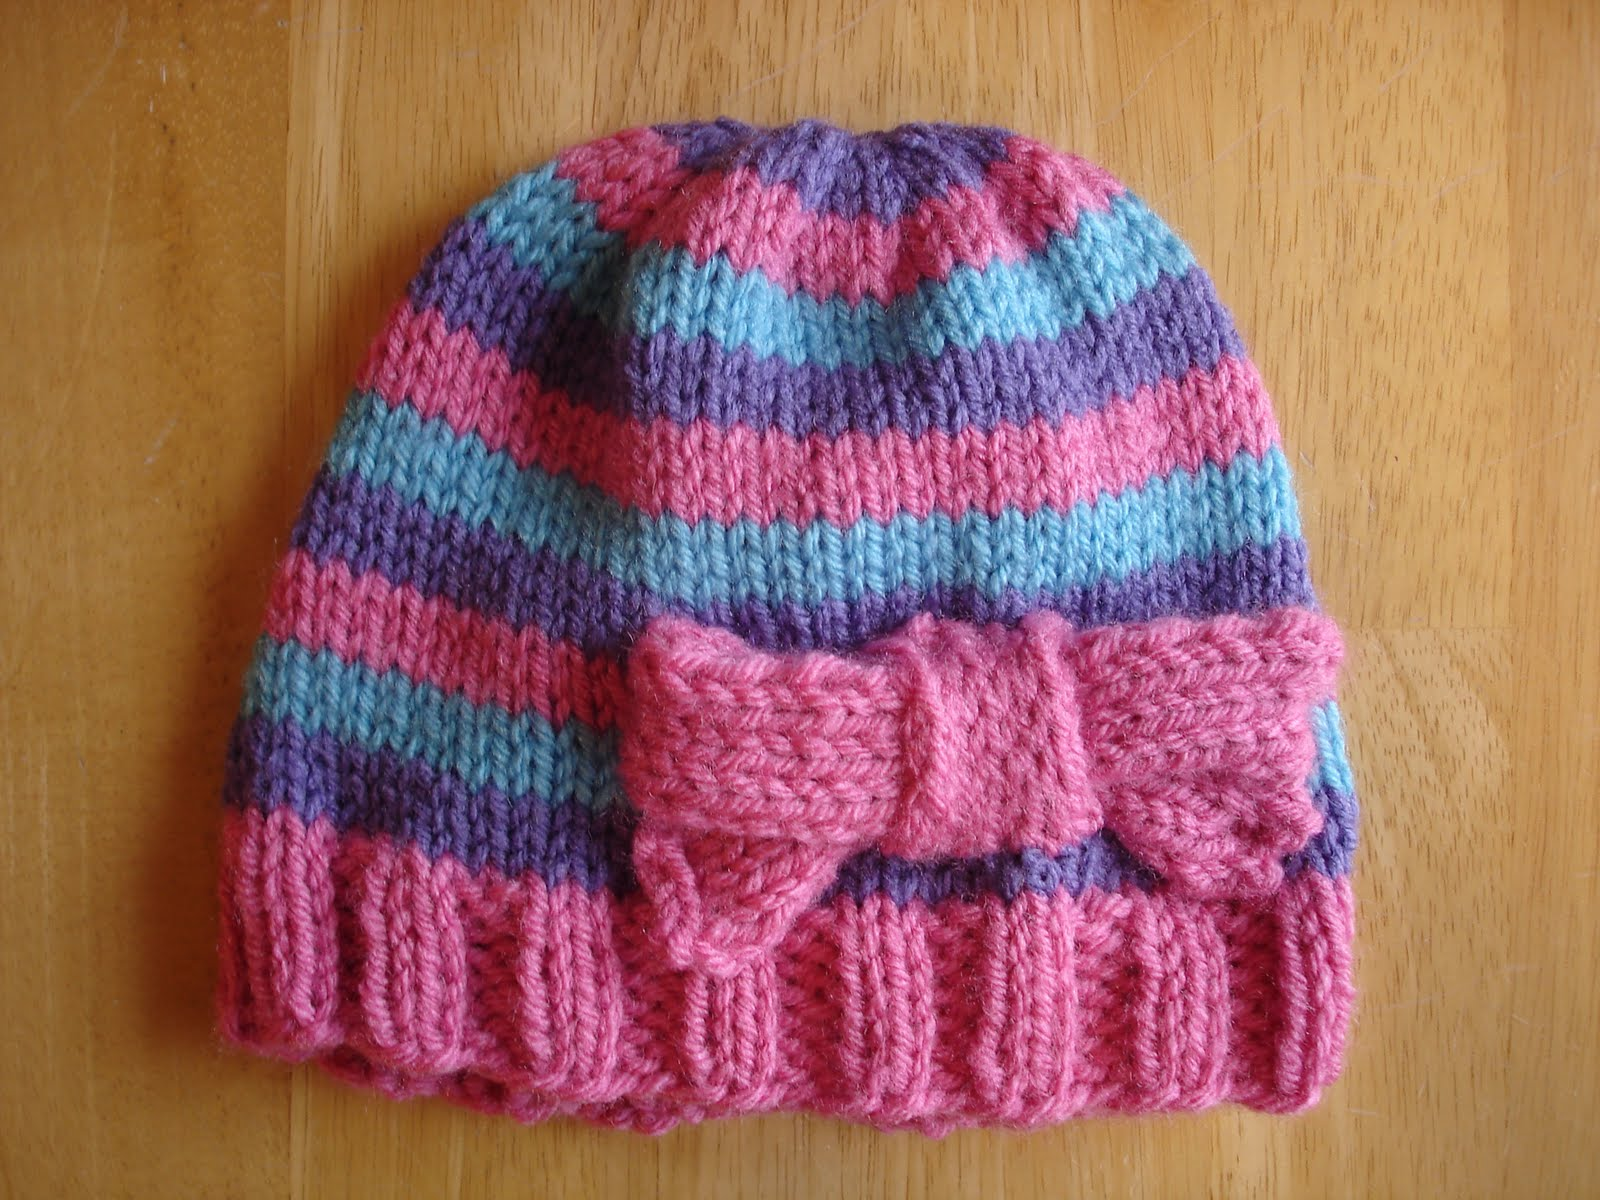 Knitting Patterns For Childrens Hats Free : Fiber Flux: Free Knitting Pattern...Super Pink Toddler Hat!